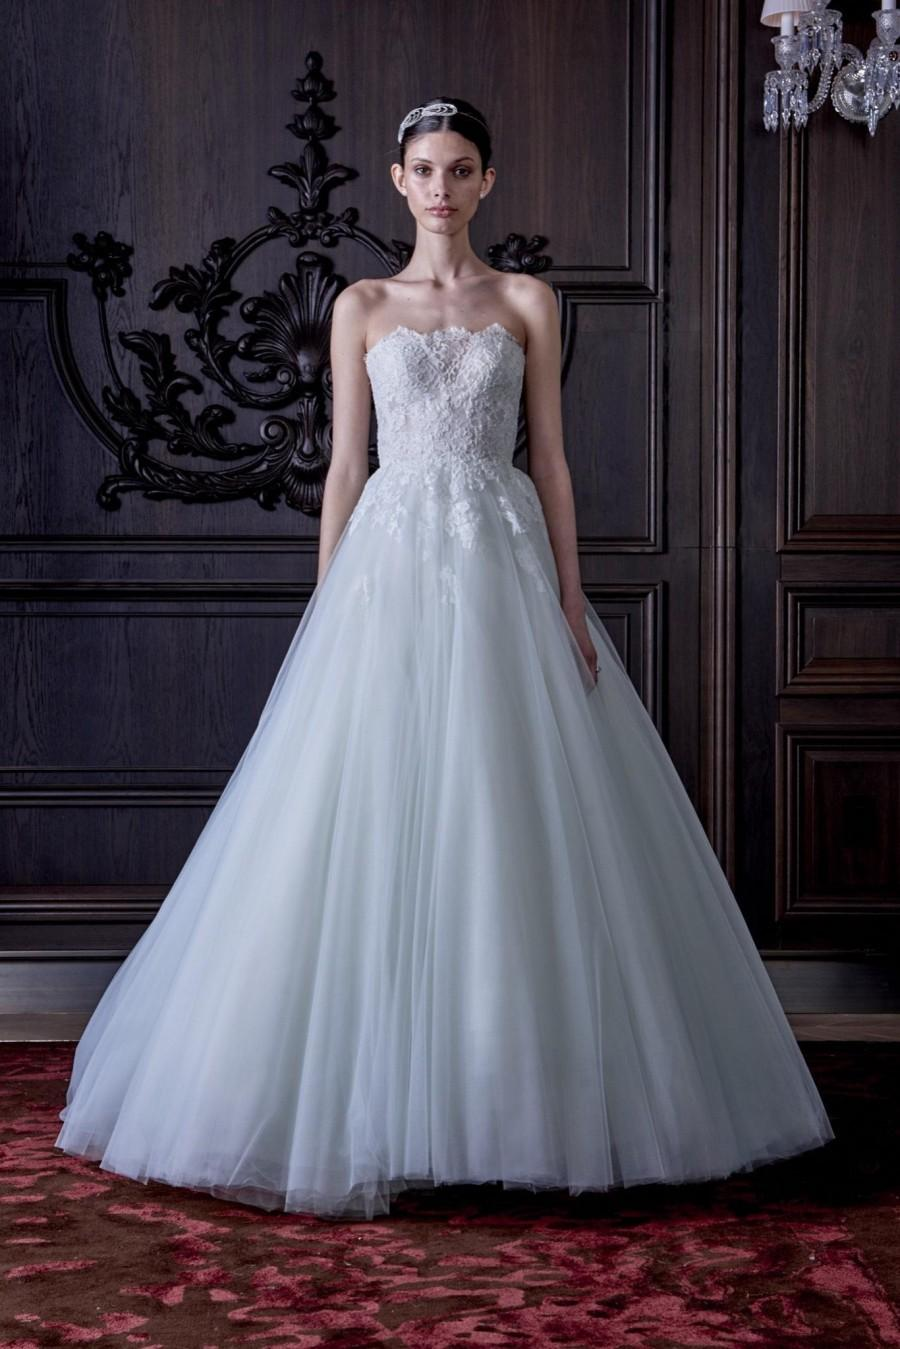 Monique Lhuillier 2016 Wedding Dresses Ball Gown Liqued Tulle Pastels Vestido De Noiva With Sweetheart Neck Bridal Gowns Custom Online